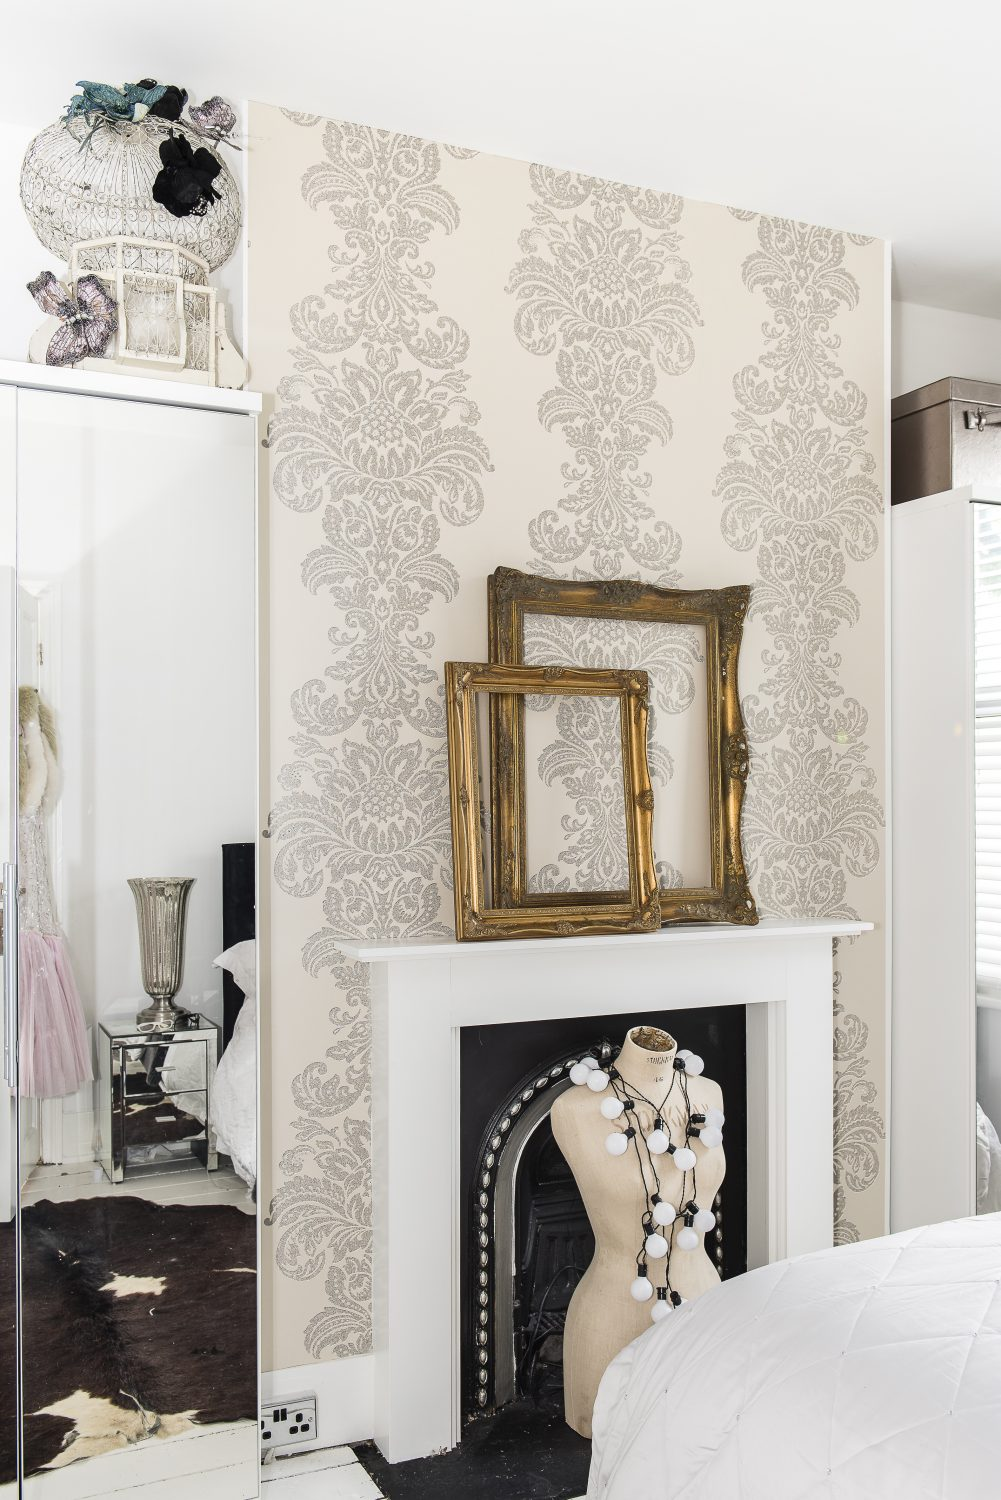 The wallpaper in the spare room, by Kandola, is hand-studded with Swarovski crystals